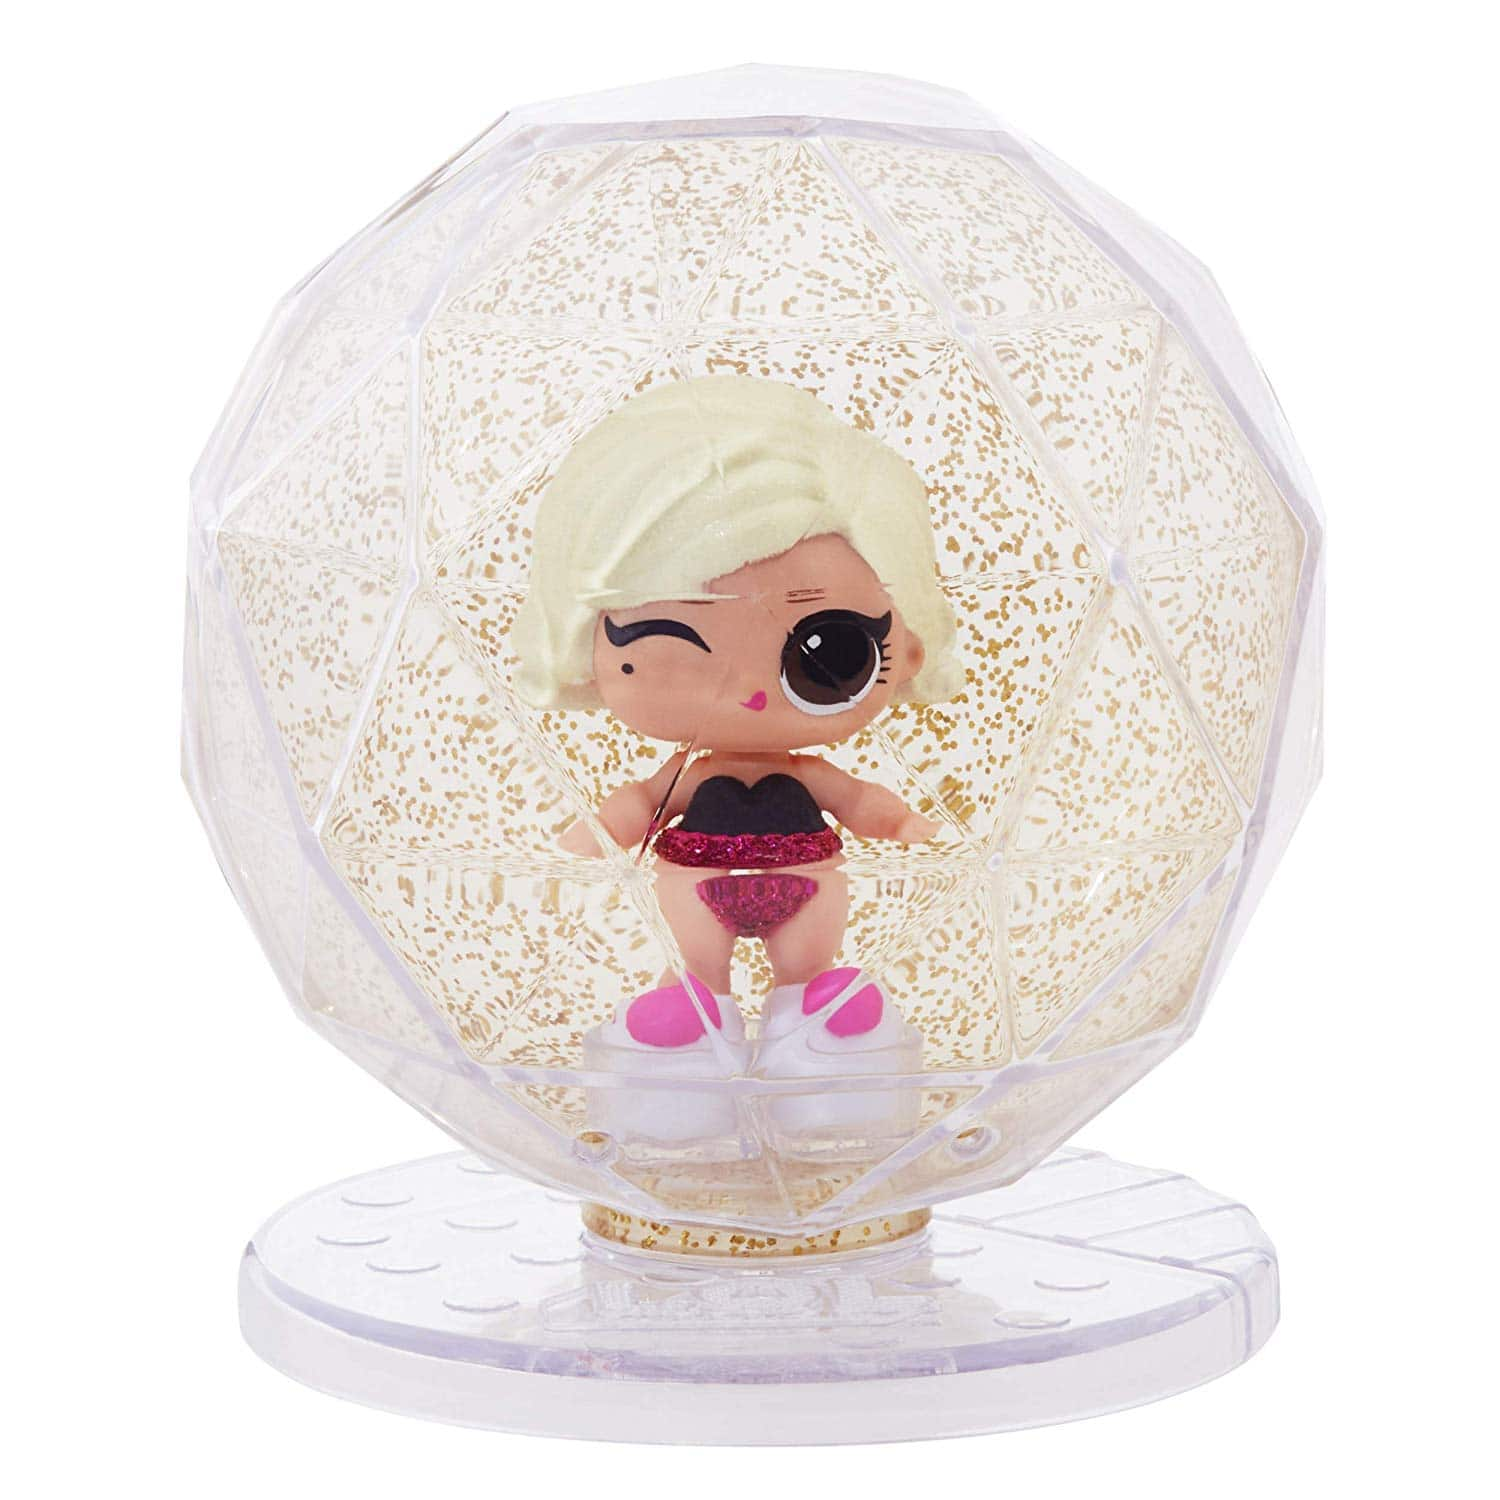 AUTHENTIC MERKITTY LOL Surprise LILS BALL TO BAG MAKEOVER SERIES